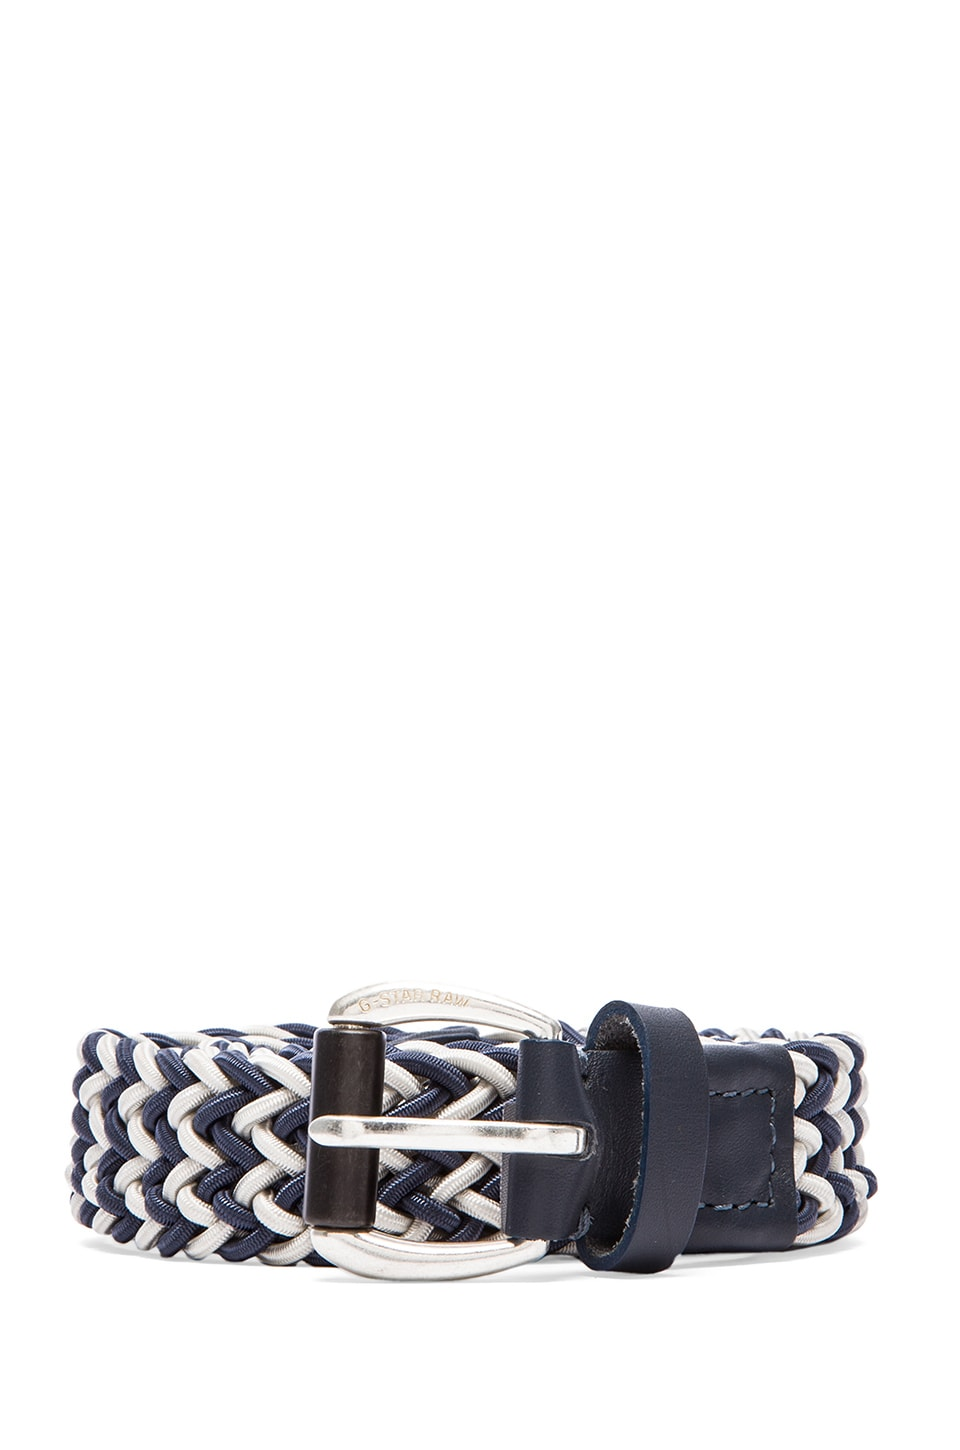 G-Star Claire Belt in Fantem Blue